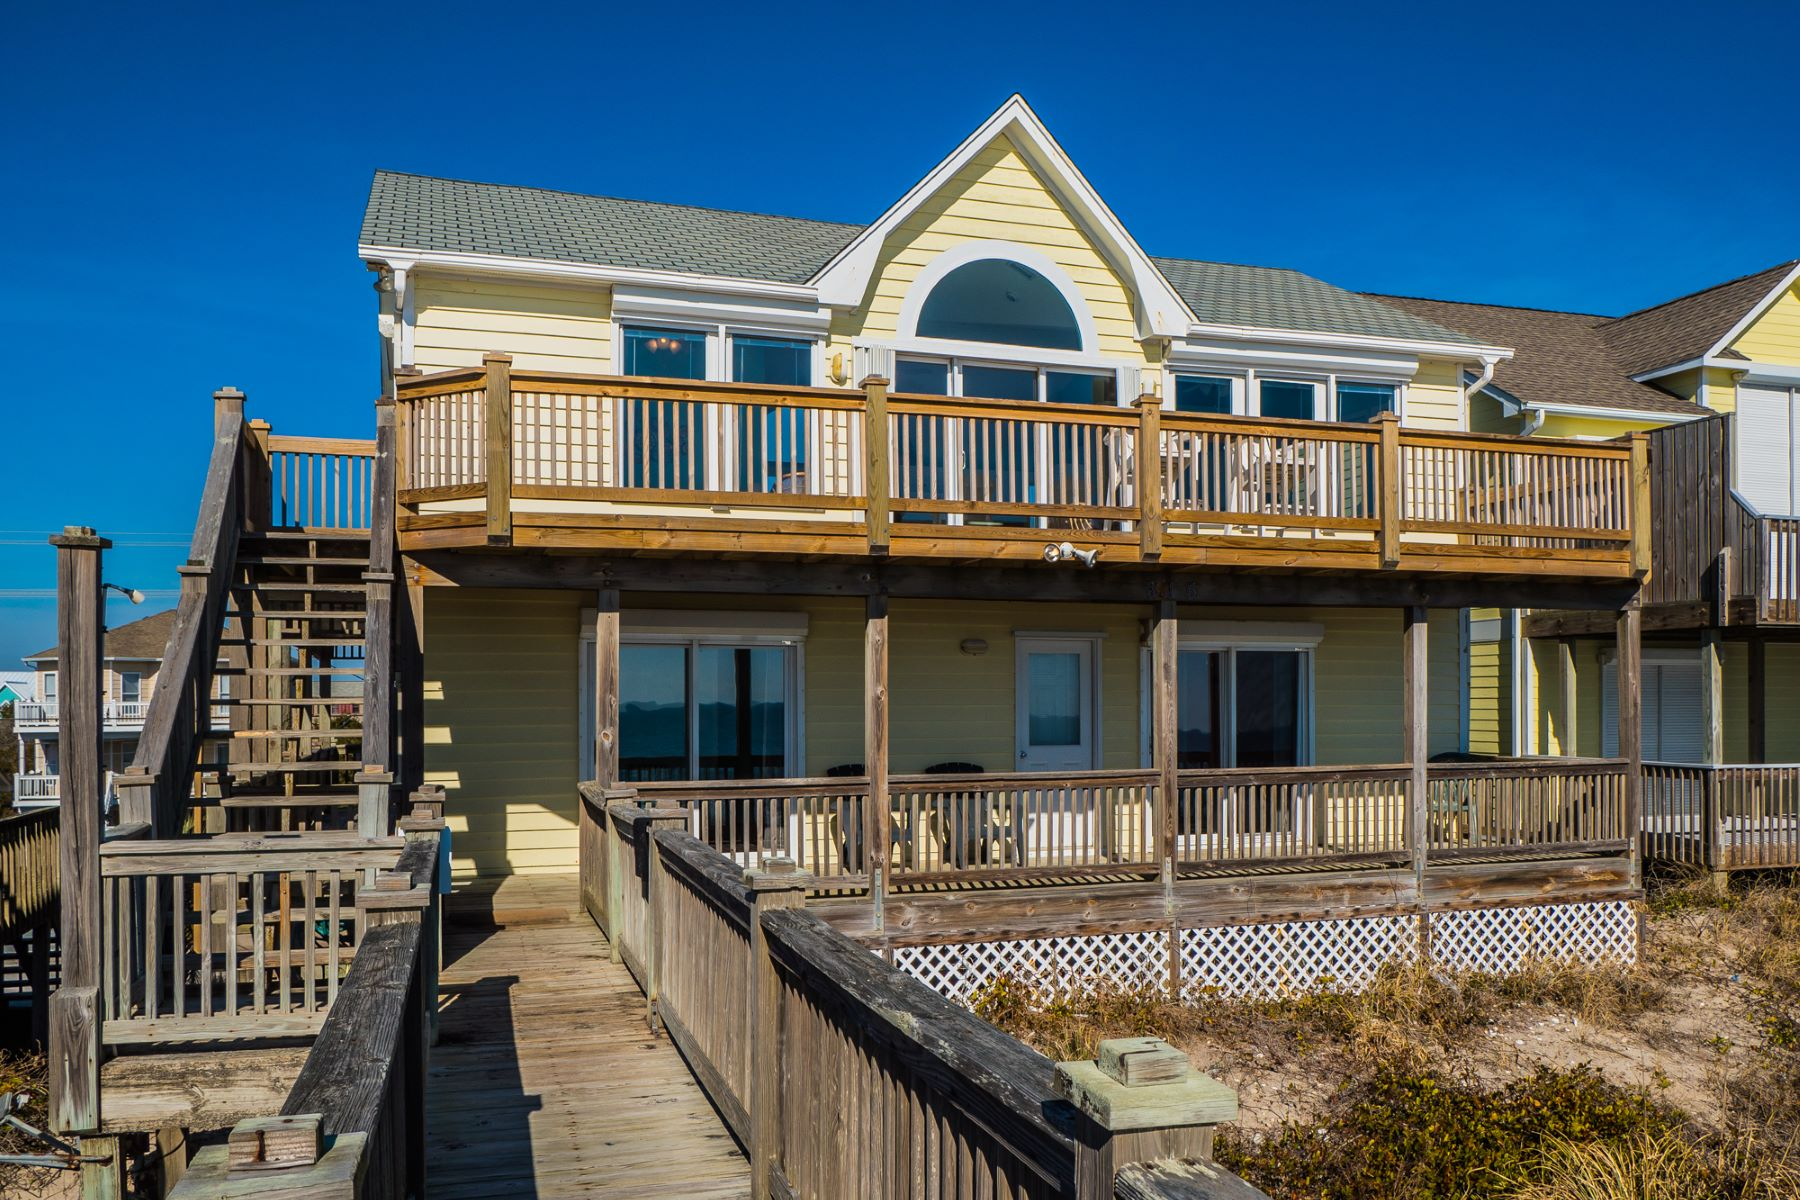 Single Family Home for Sale at Recently Renovated Oceanfront Cottage 815 N Anderson Blvd, Topsail Beach, North Carolina, 28445 United States